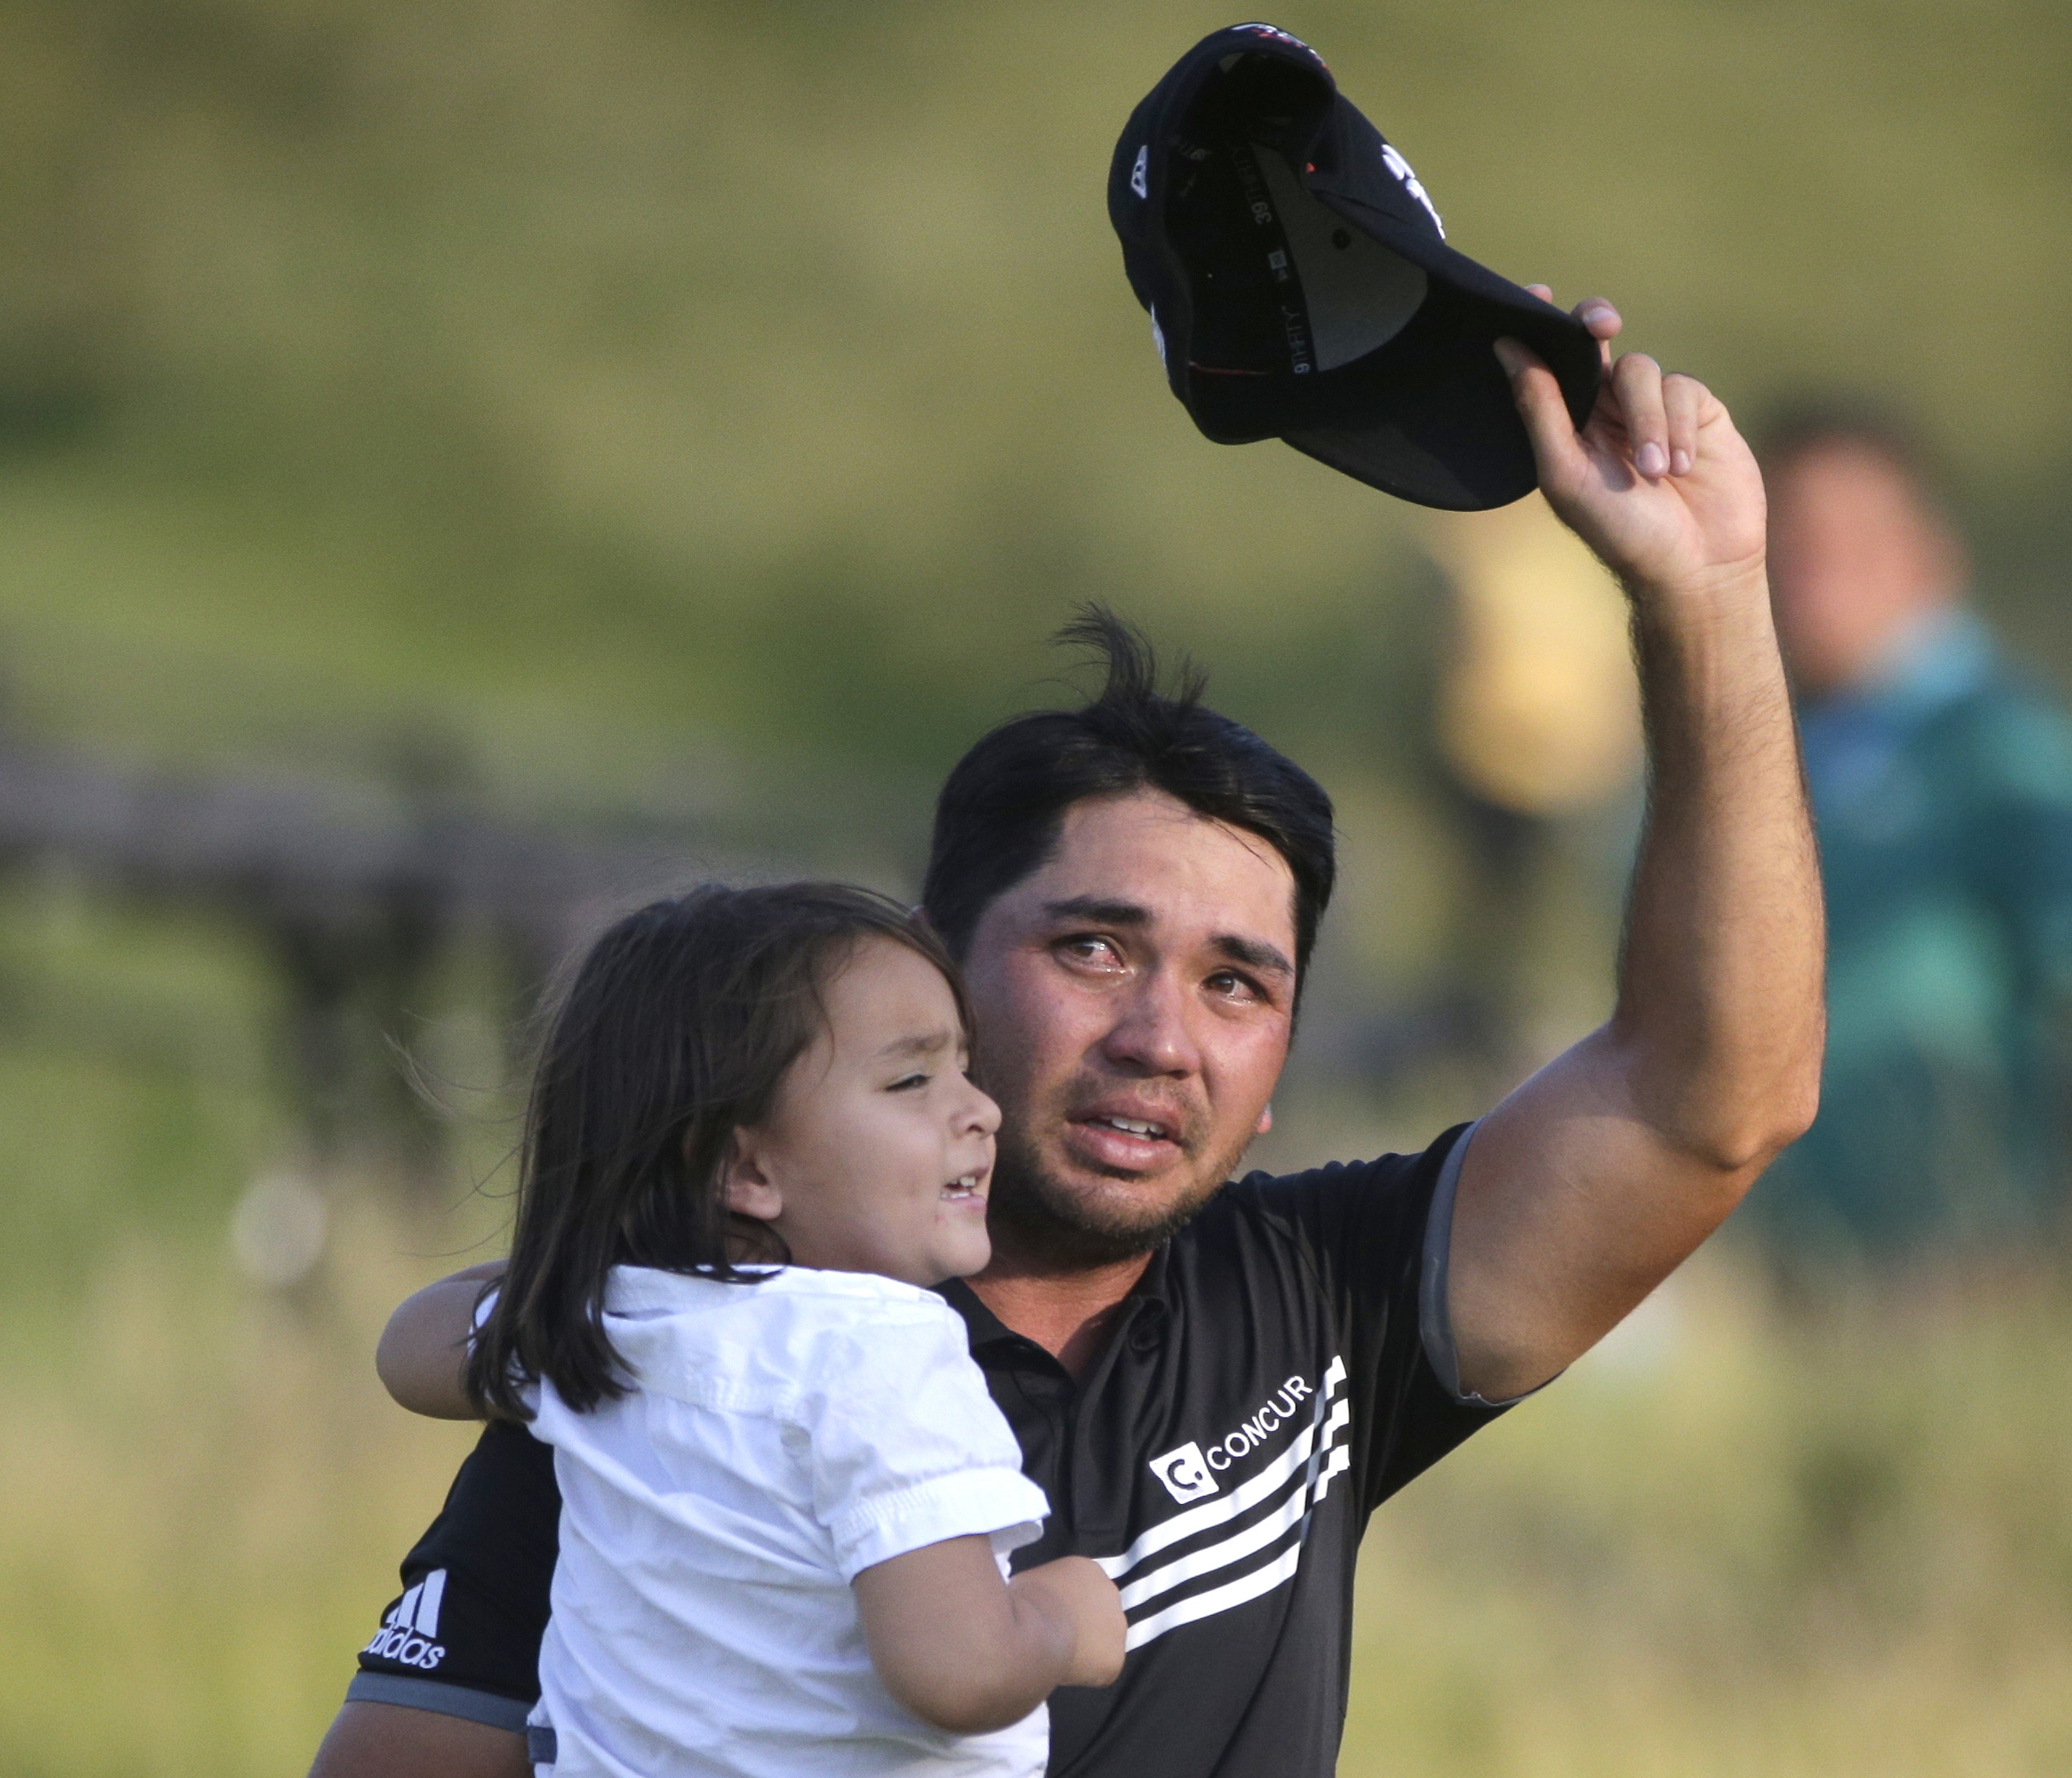 Jason Day, of Australia, holds his son Dash as he walks off the 18th green after winning the PGA Championship golf tournament Sunday, Aug. 16, 2015, at Whistling Straits in Haven, Wis.  (AP Photo/Jae Hong)